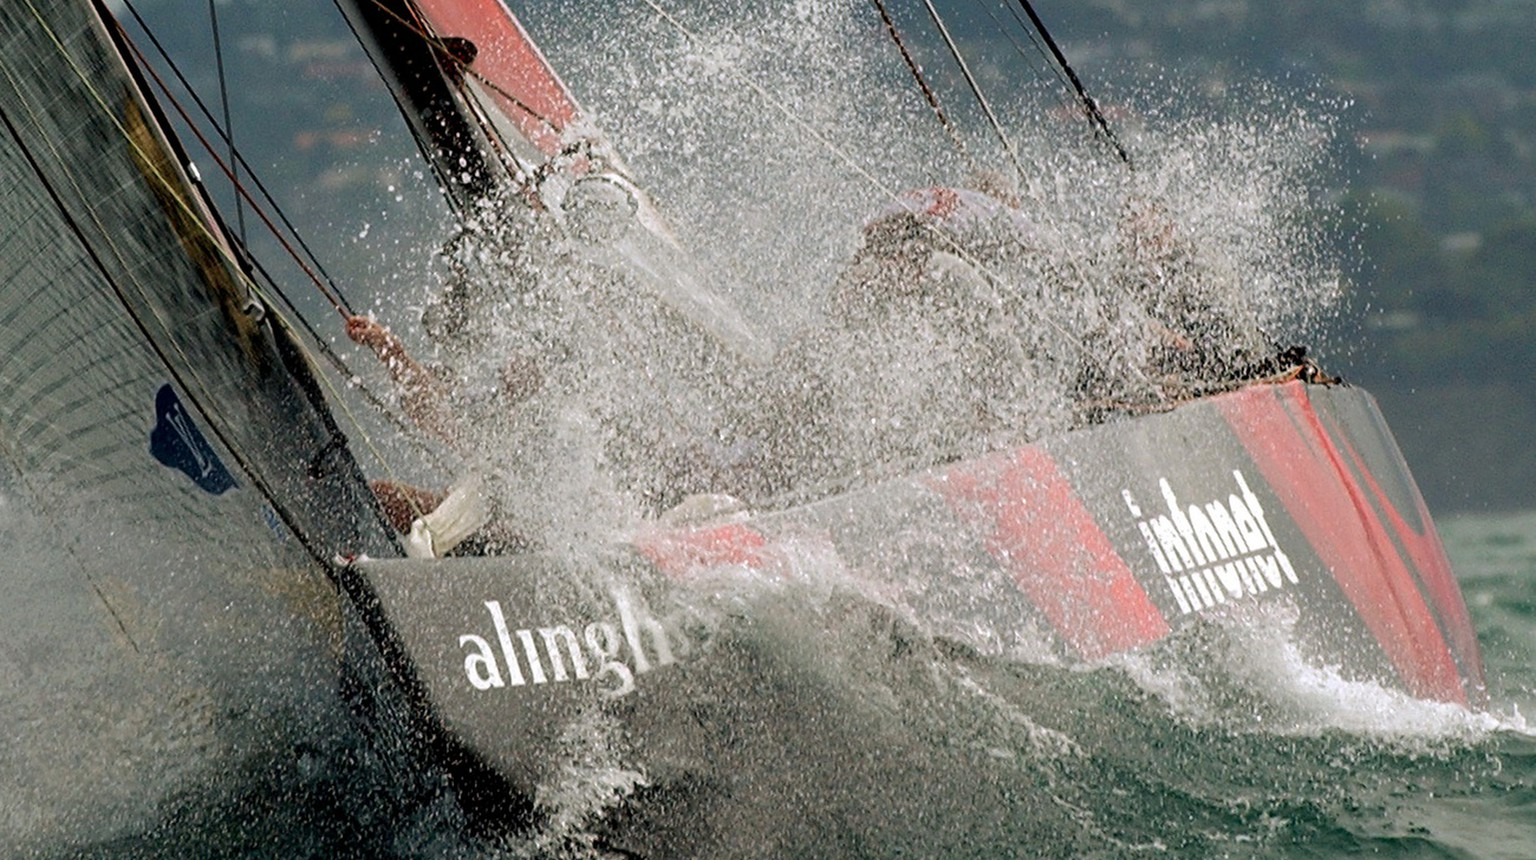 Swiss Defi yacht Alinghi, SUI-64, sailing in a wave during the fifth match-race against the New Zealander defender yacht, Team New Zealand, NZL-82, during the America's Cup final, in Hauraki gulf, near Auckland, New Zealand, Sunday, March 2, 2003. Alinghi won today's race by 45 seconds that brings the score to 5: 0 for Alinghi which won the America's Cup. The Cup will return to Europe for the first time with Alinghi after 152 years. (KEYSTONE/Laurent Gillieron)